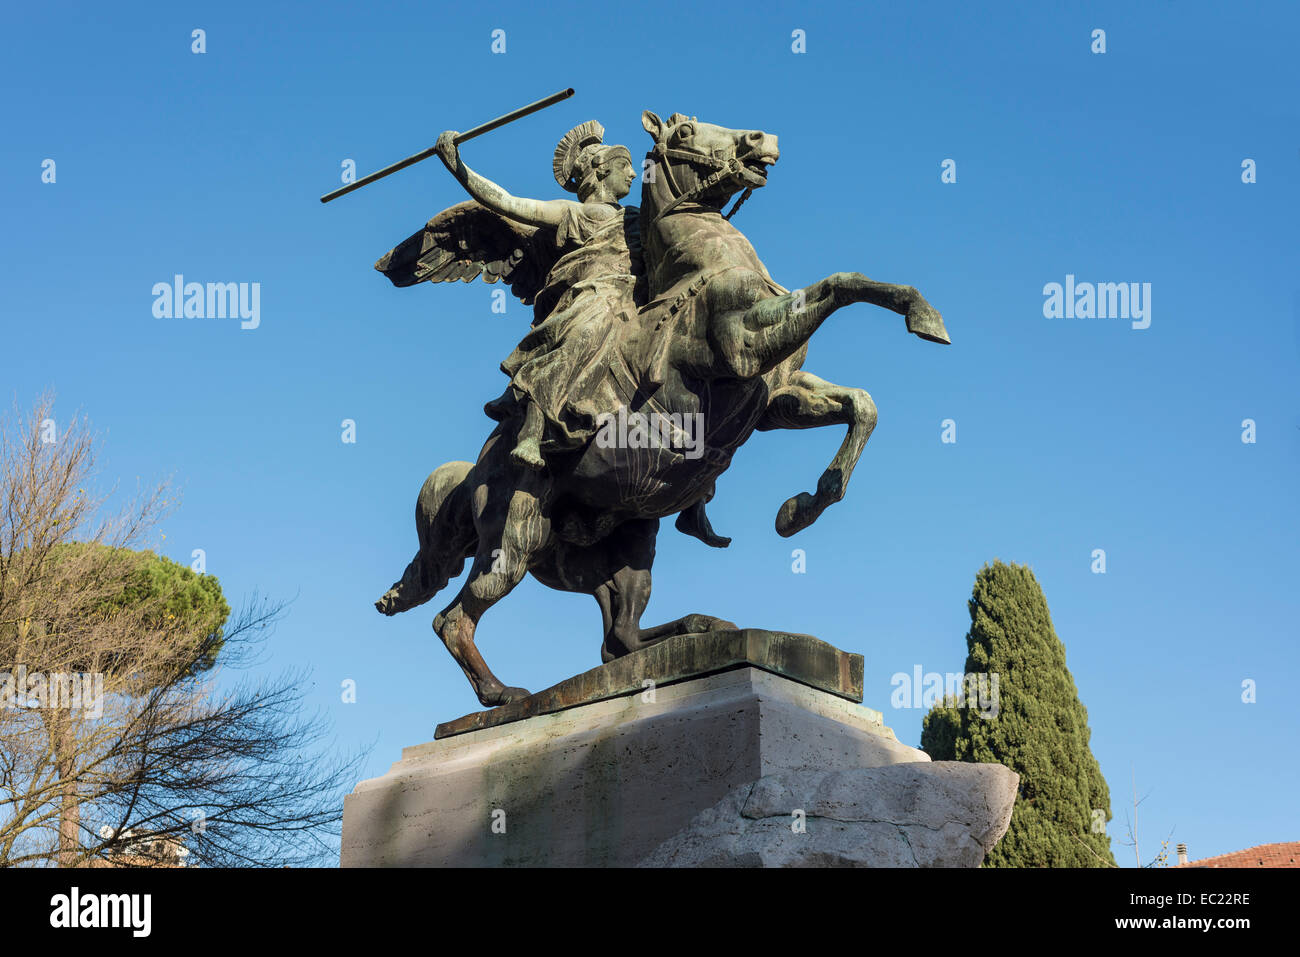 Monument the Fallen of the First World War, Nomentana, Italien XVII Trieste, Rome, Lazio, Italy - Stock Image